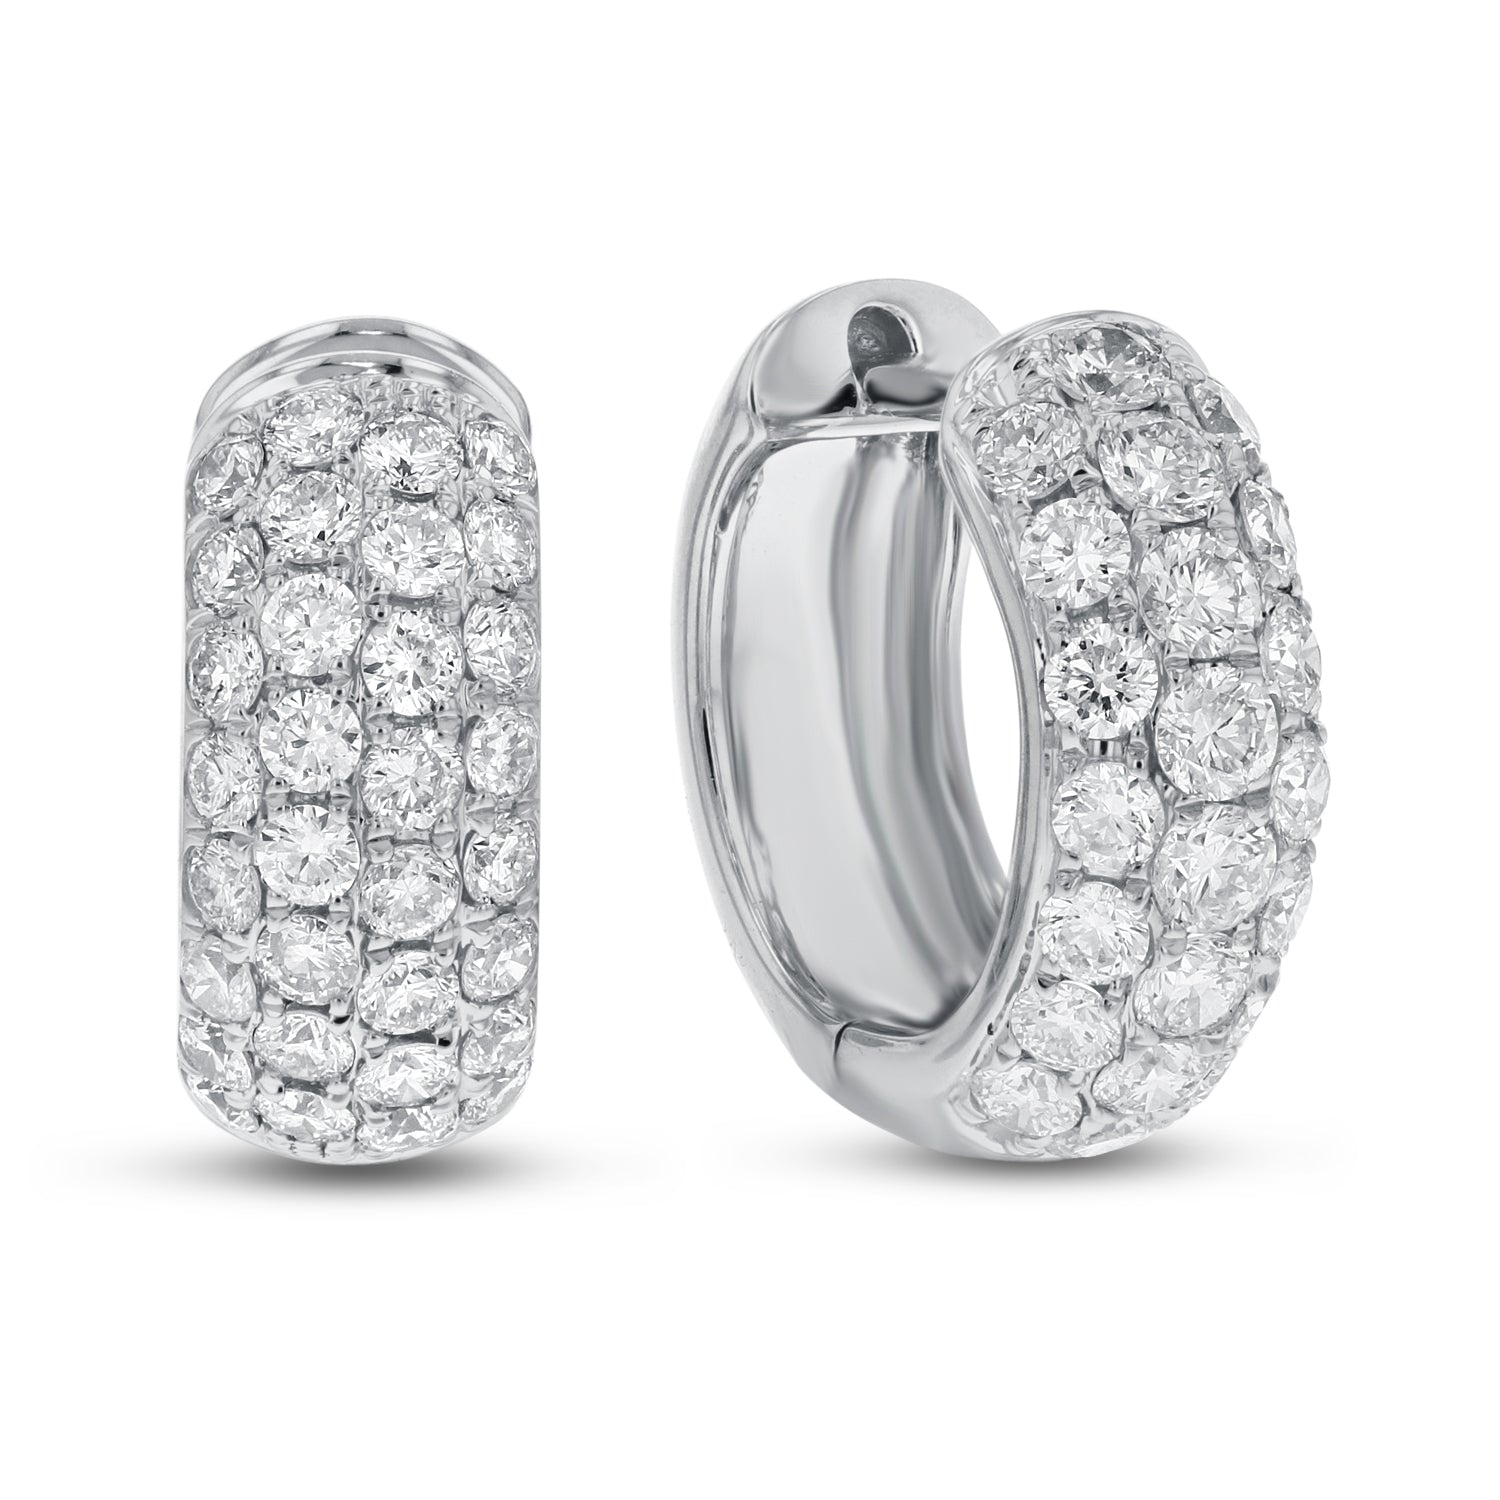 18K White Gold Diamond Earrings, 1.27 Carats